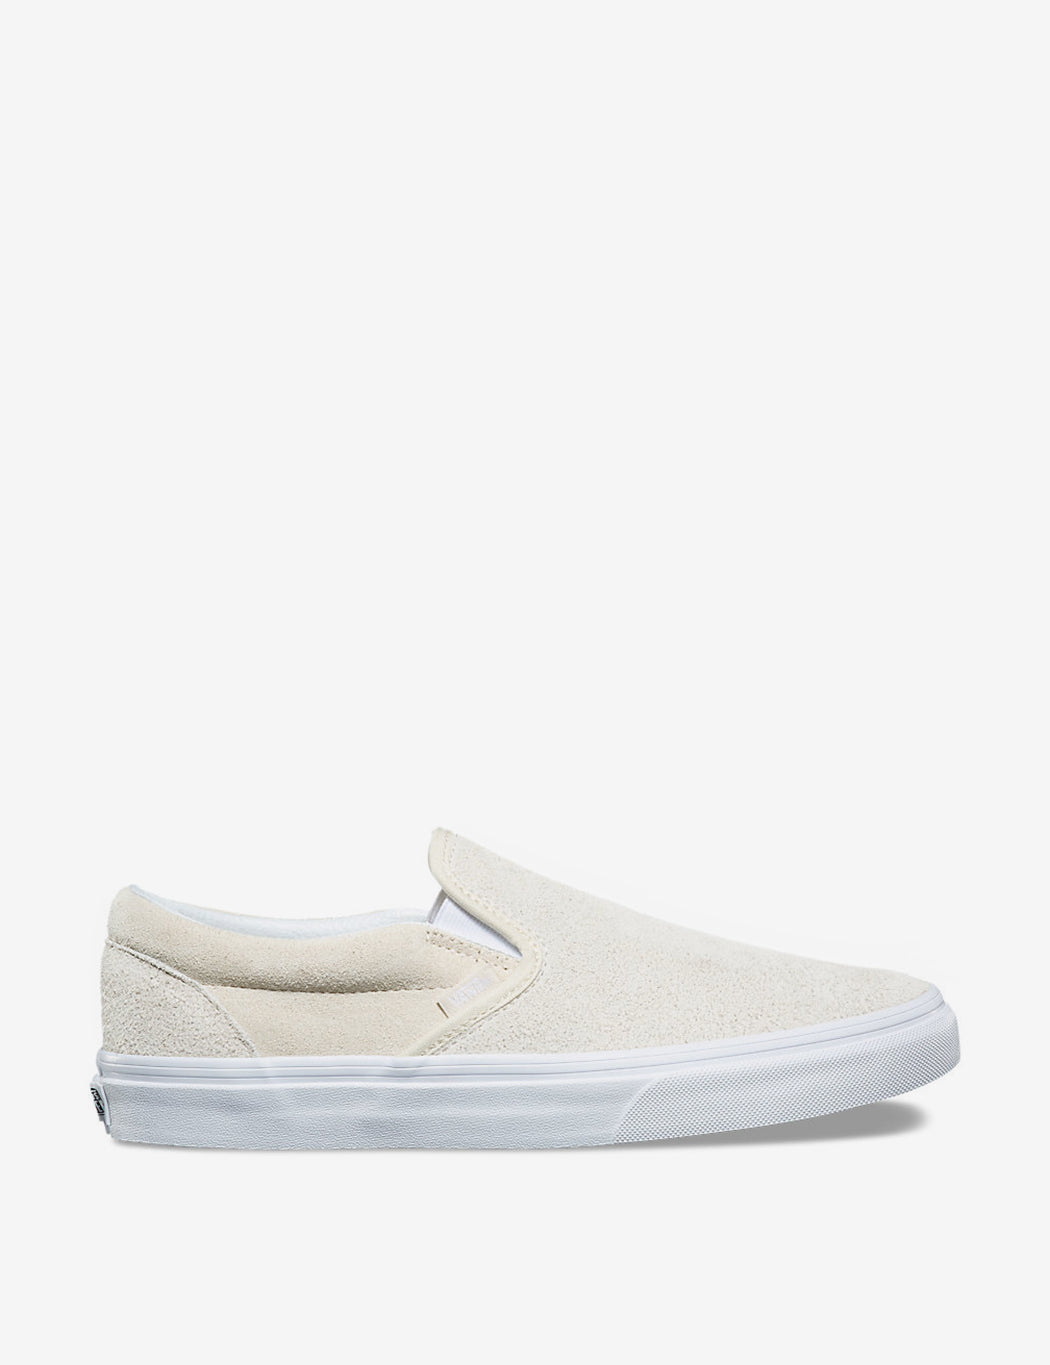 f3108ffb41 Vans Classic Slip-On (Hairy Suede) - Turtledove Off White